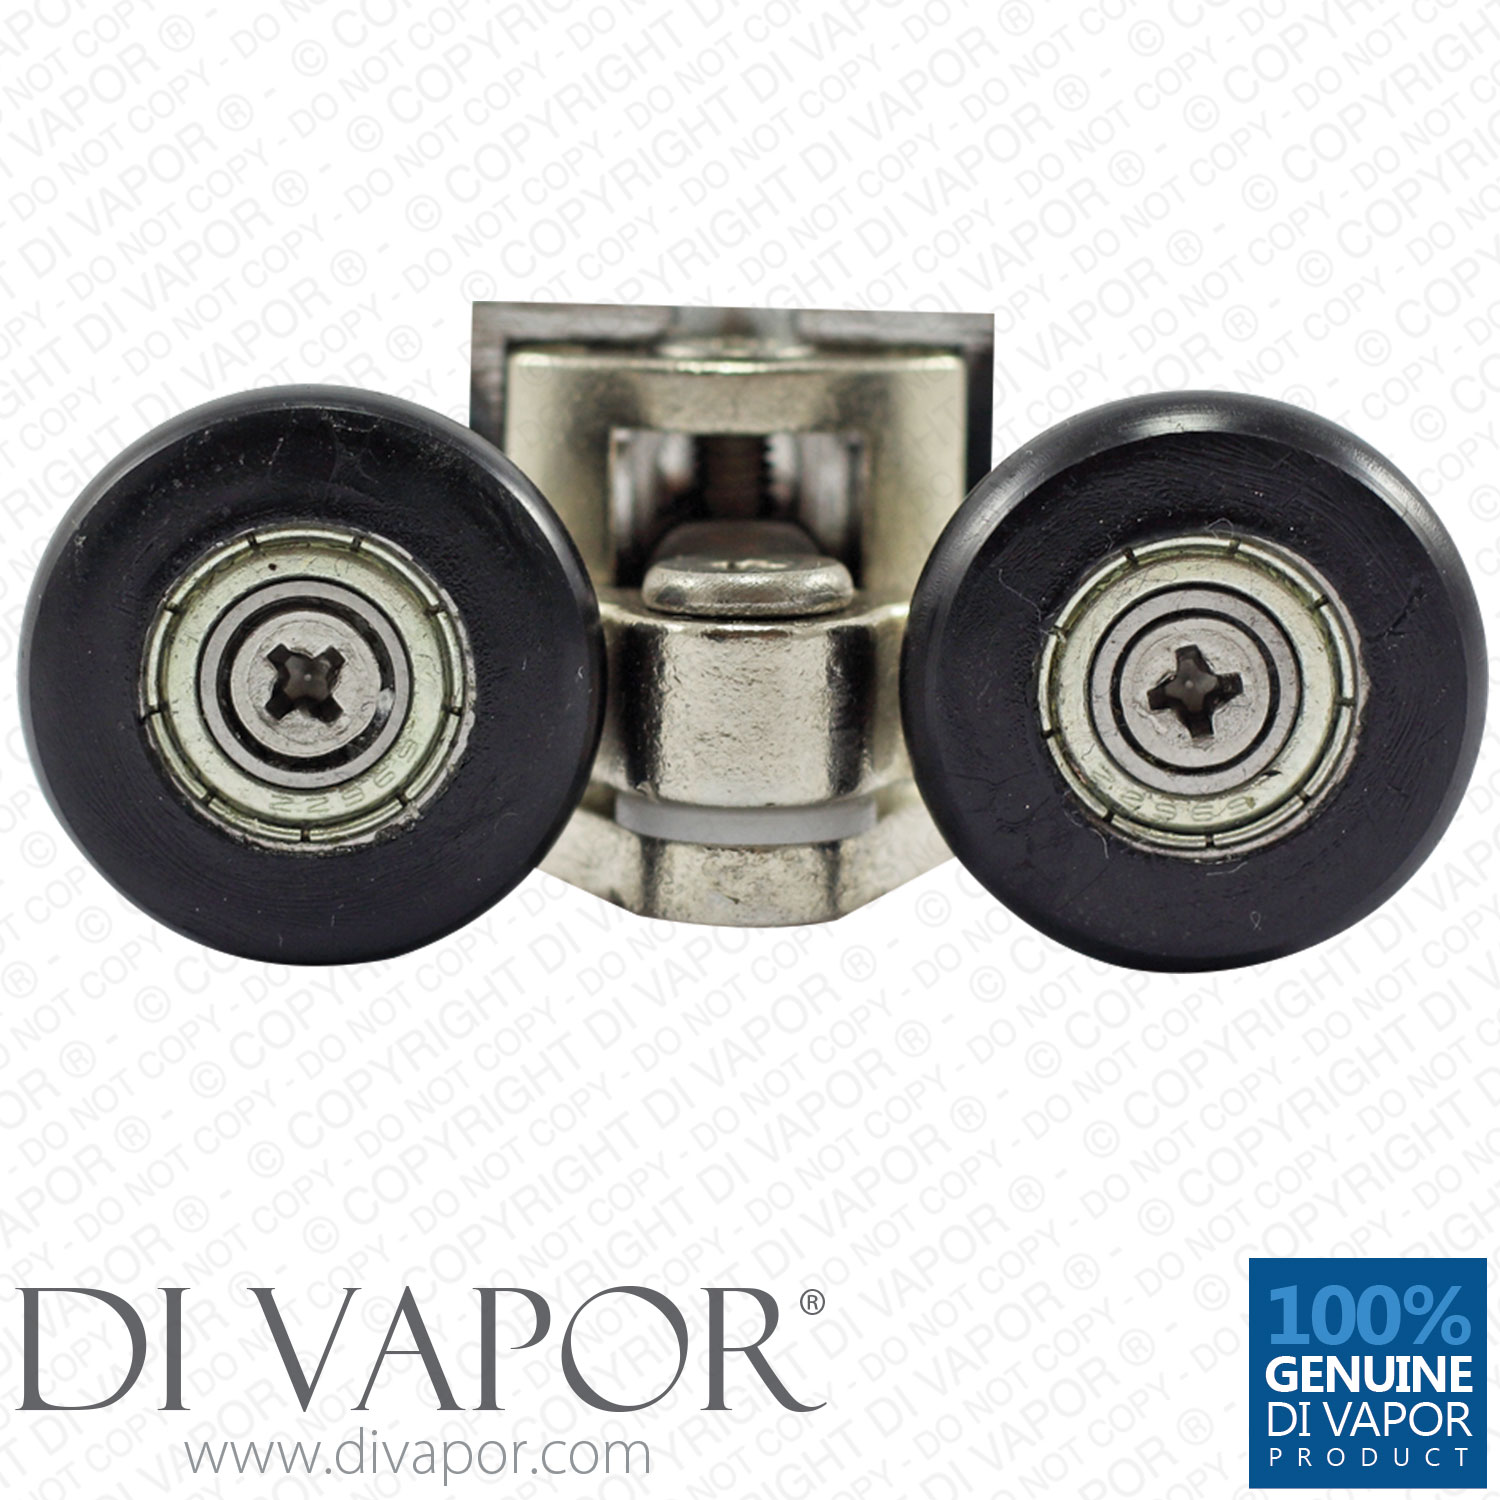 25mm Double Swivel Metal Shower Rollers Black Wheels